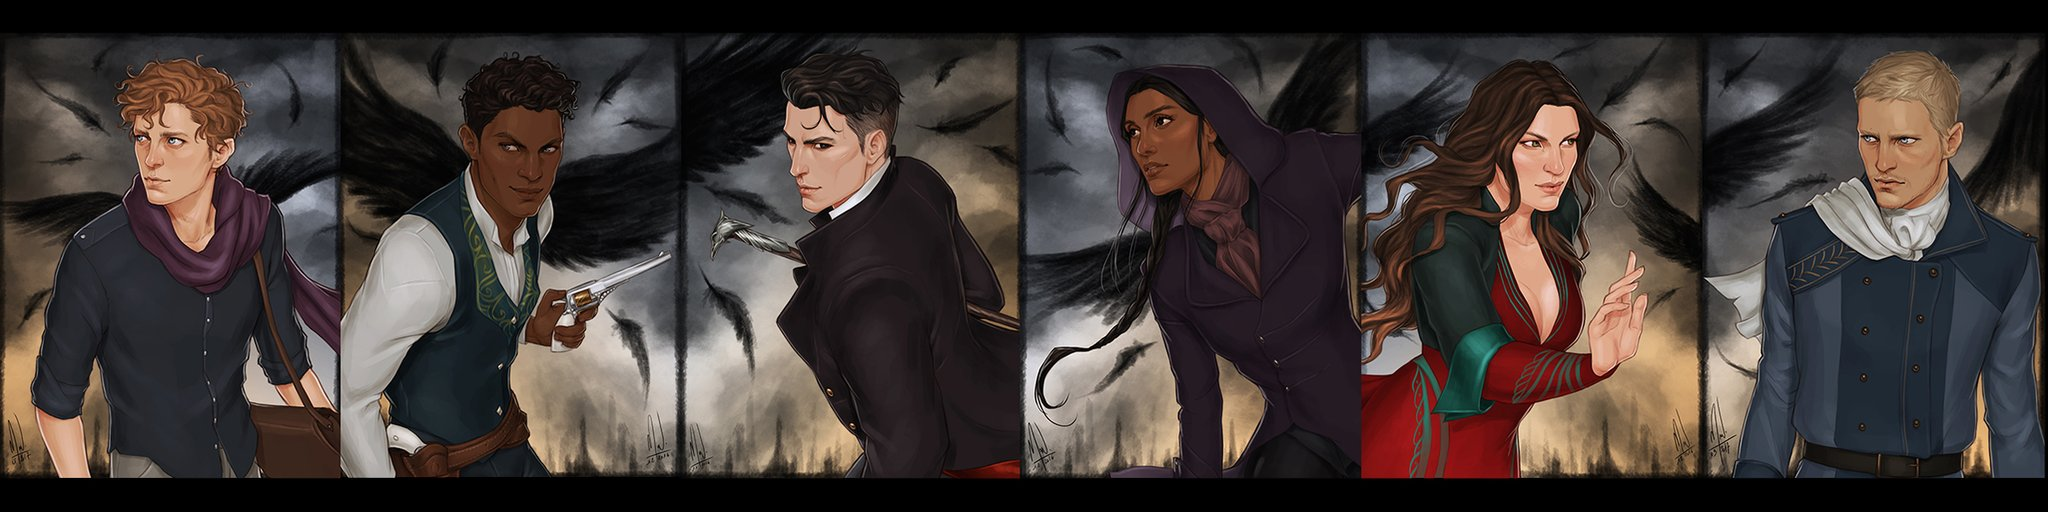 Wonderful artwork of the Crows by @merwild